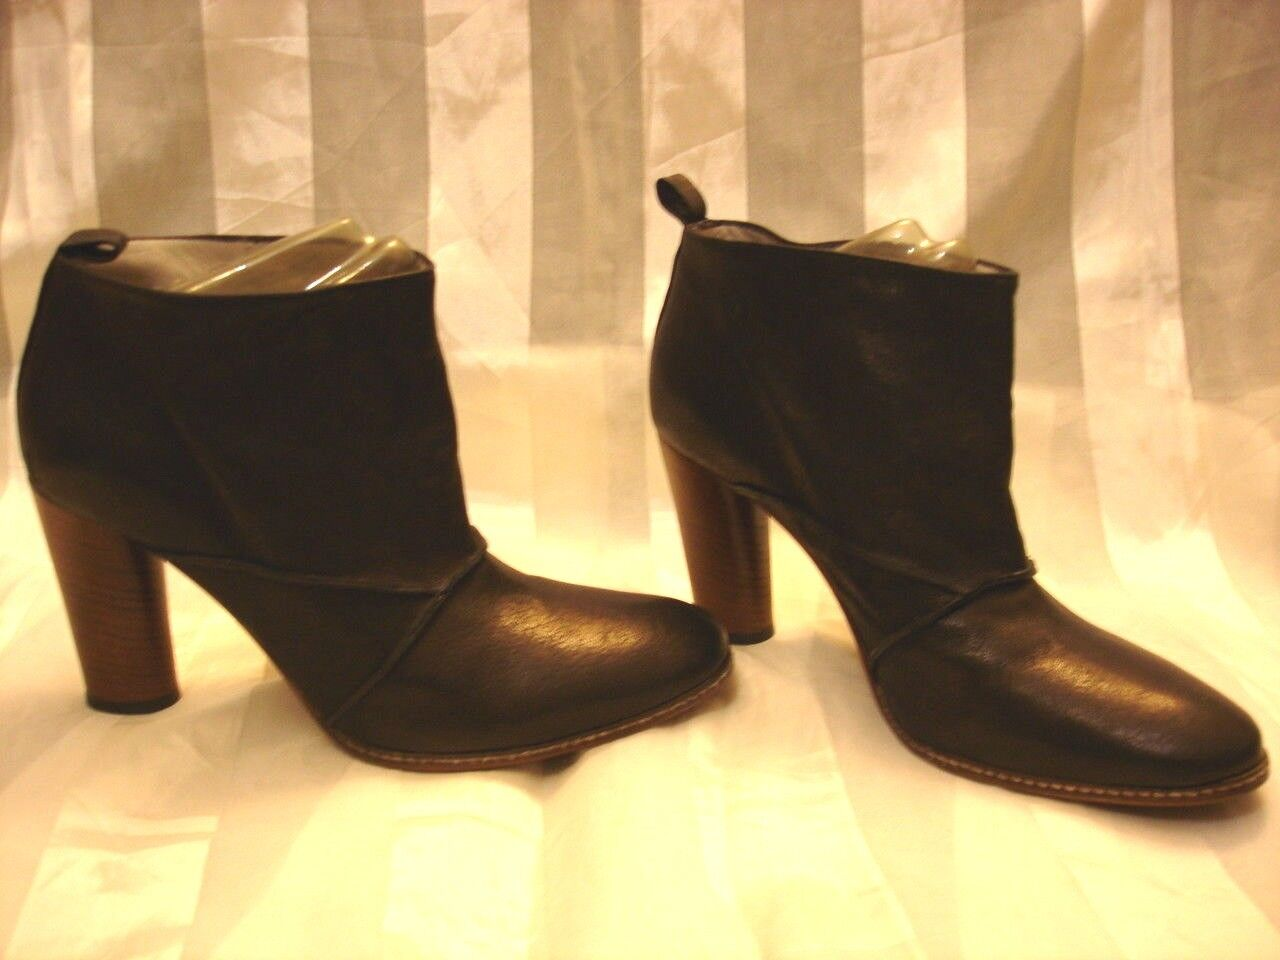 EILEEN SHIELDS Womens Black Leather Shoes Booties Boots Size 38 1/2 Italy